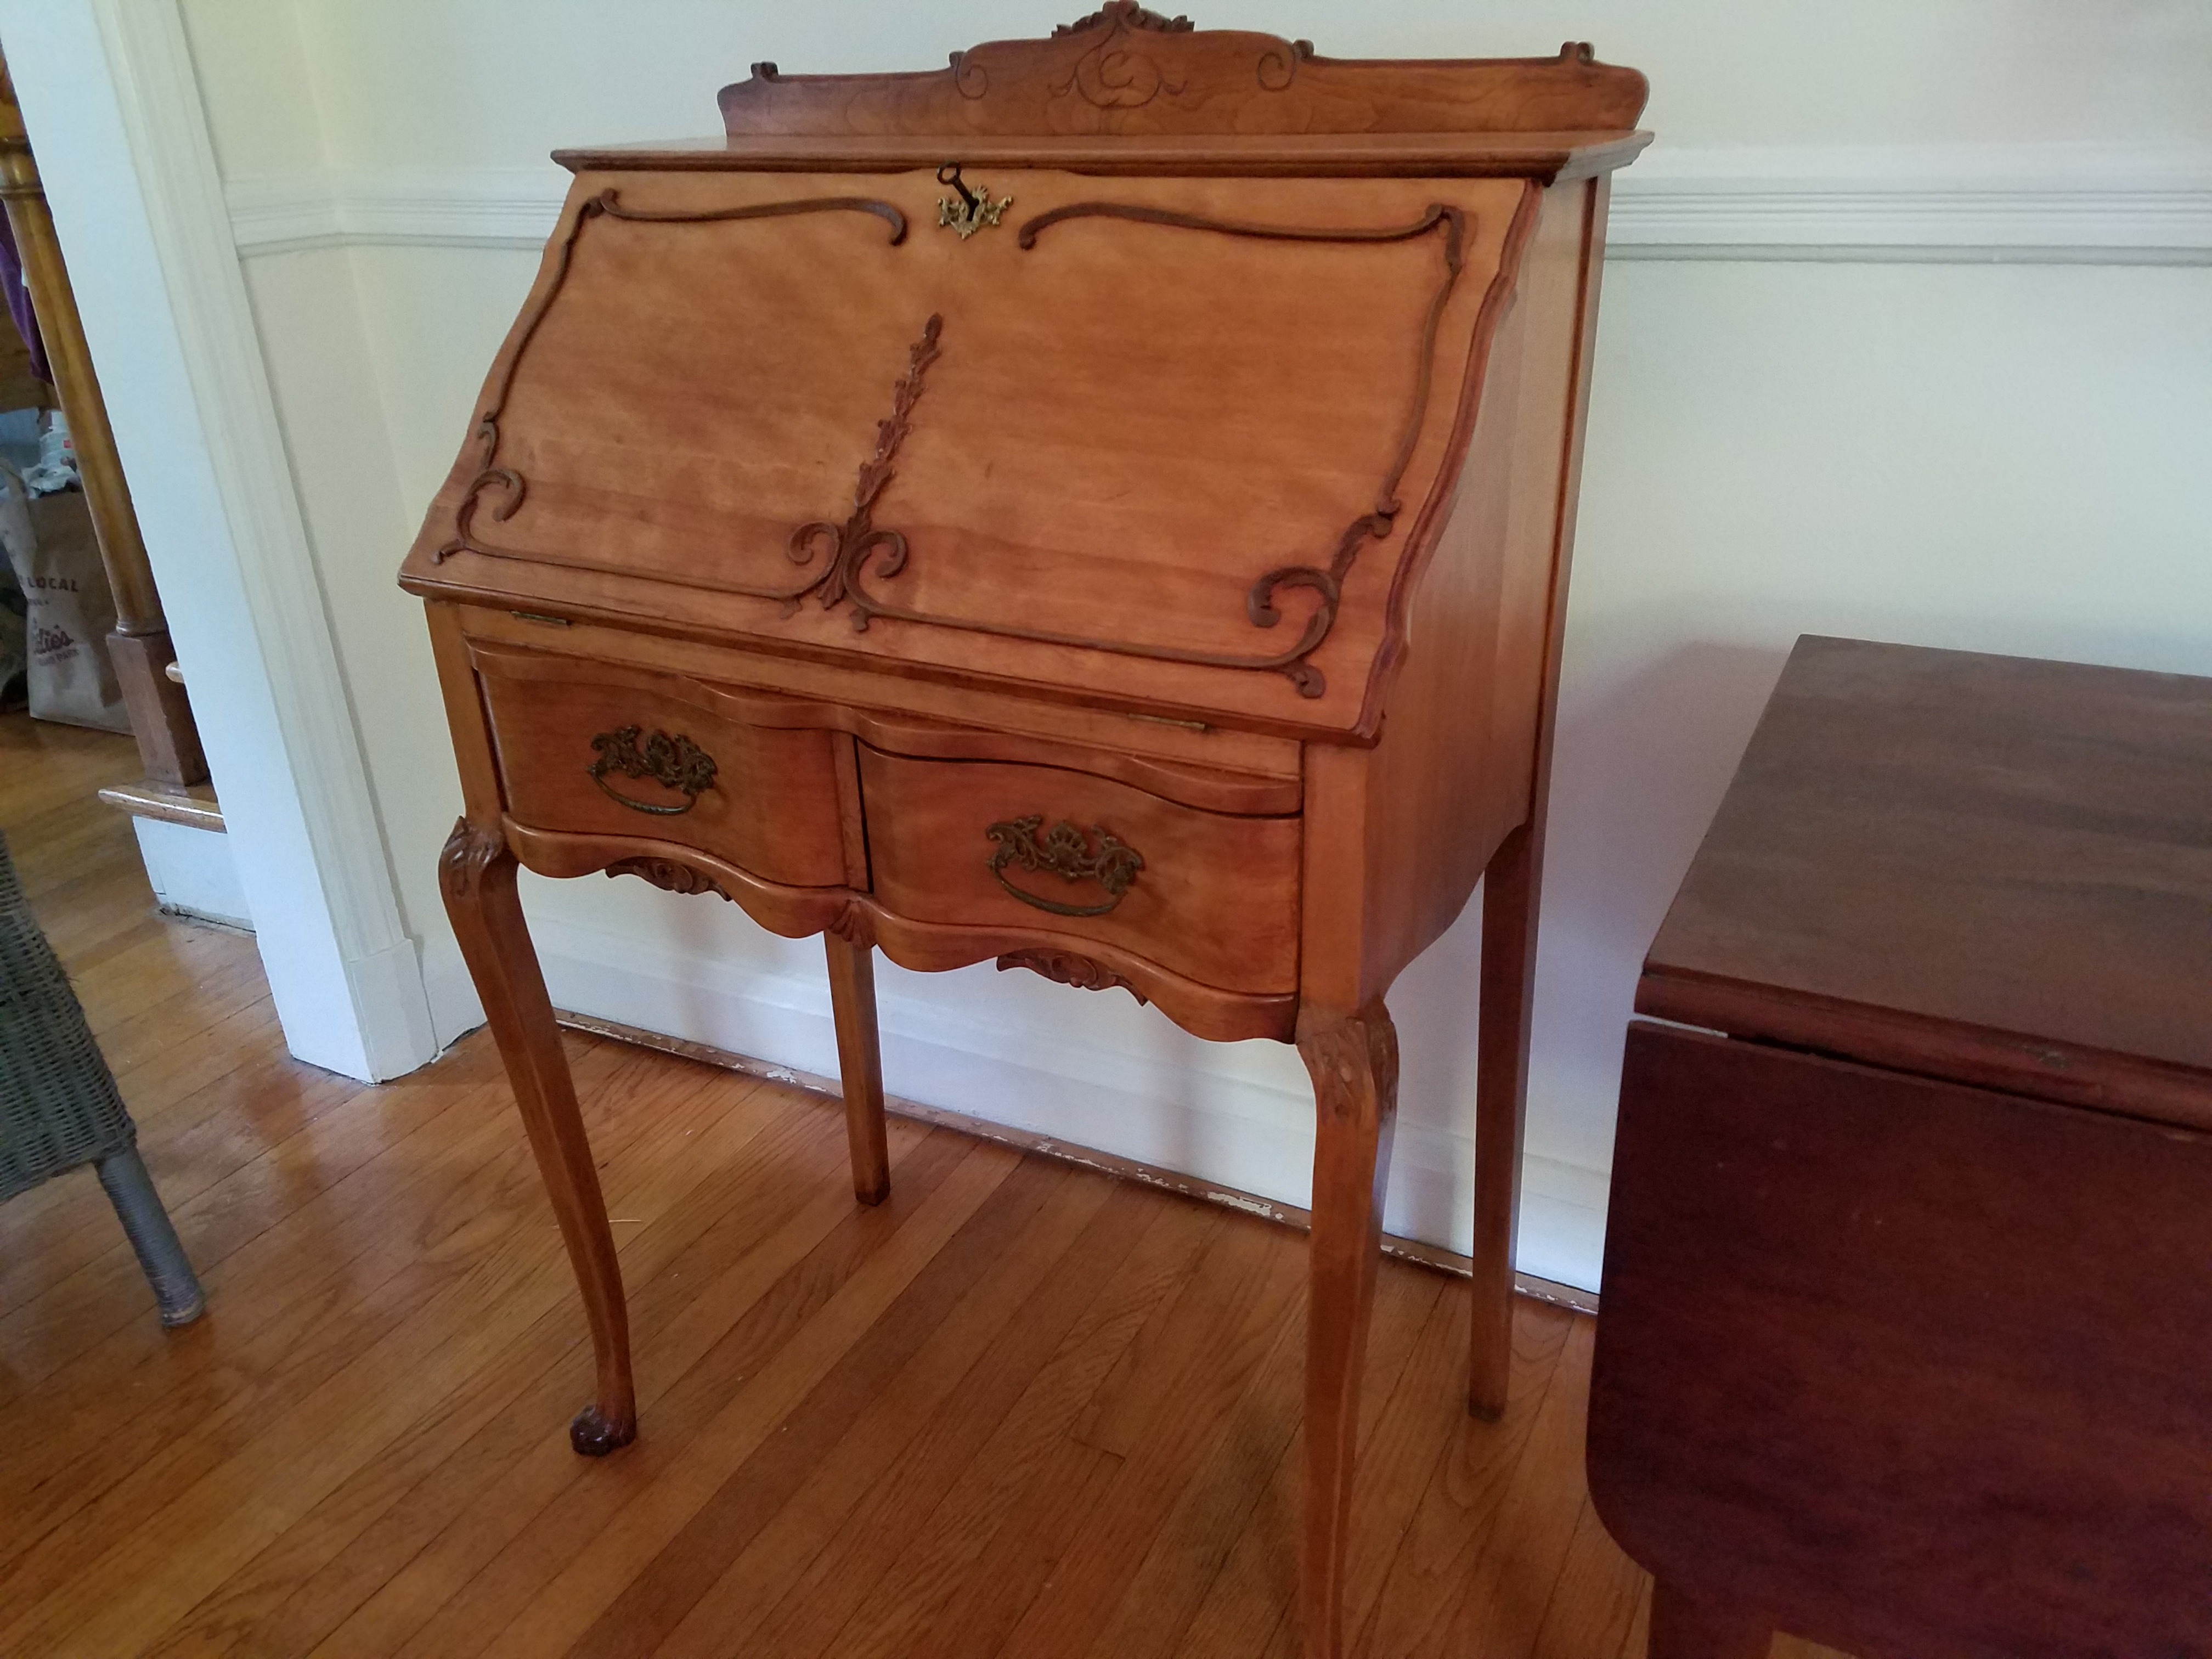 As A Furniture Repair Company We Specialize In